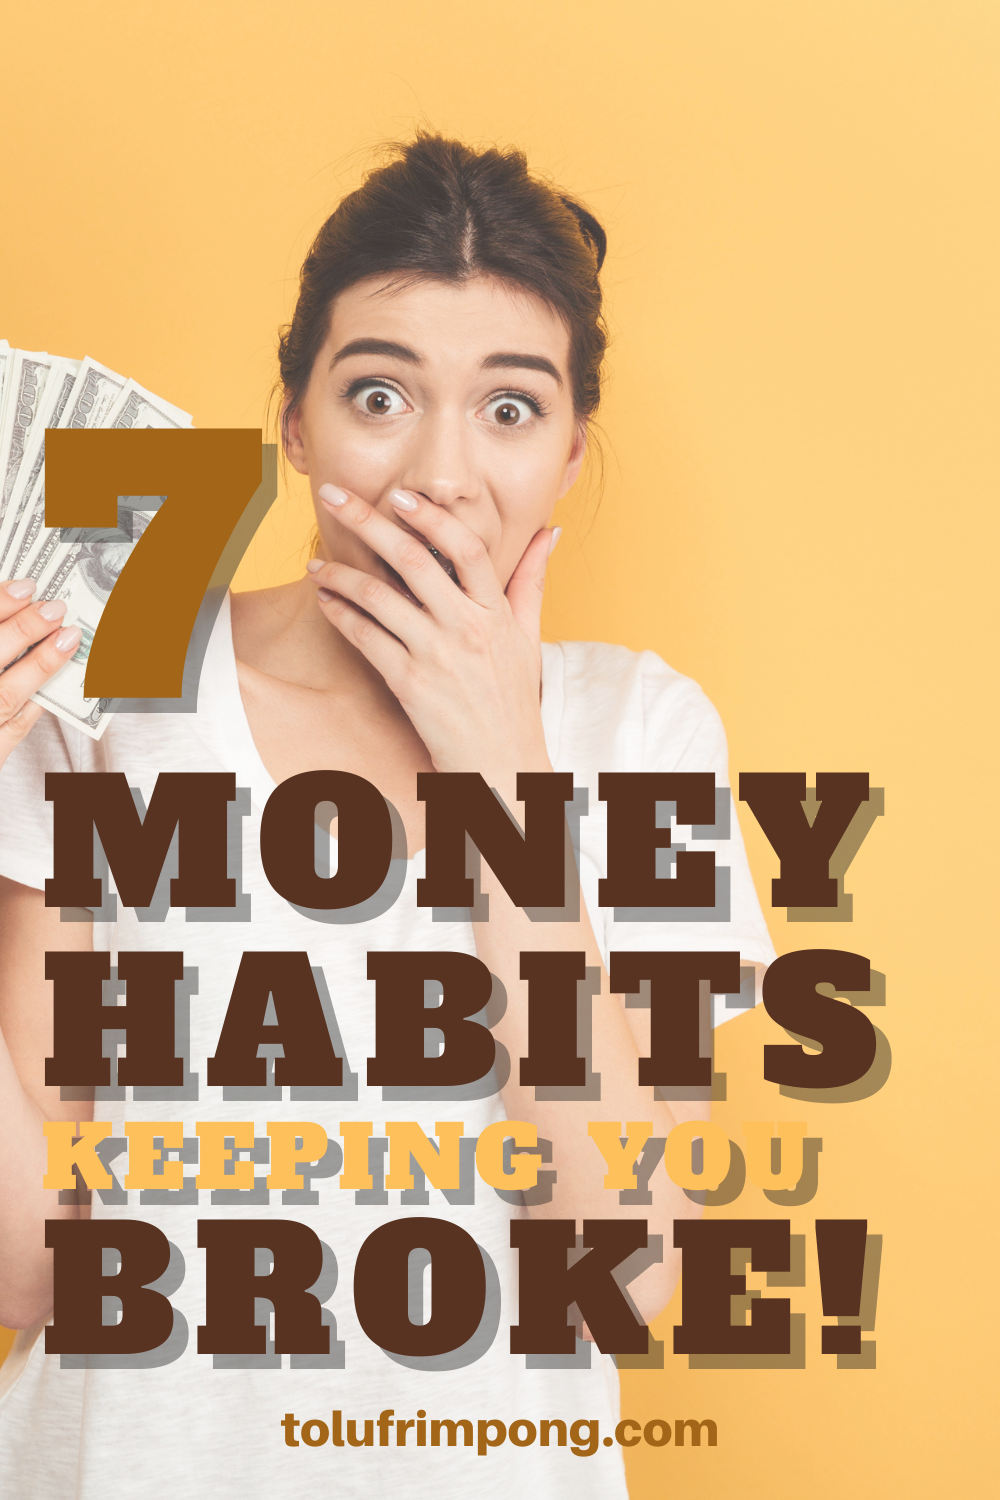 7 Money Habits That Are Keeping You Broke